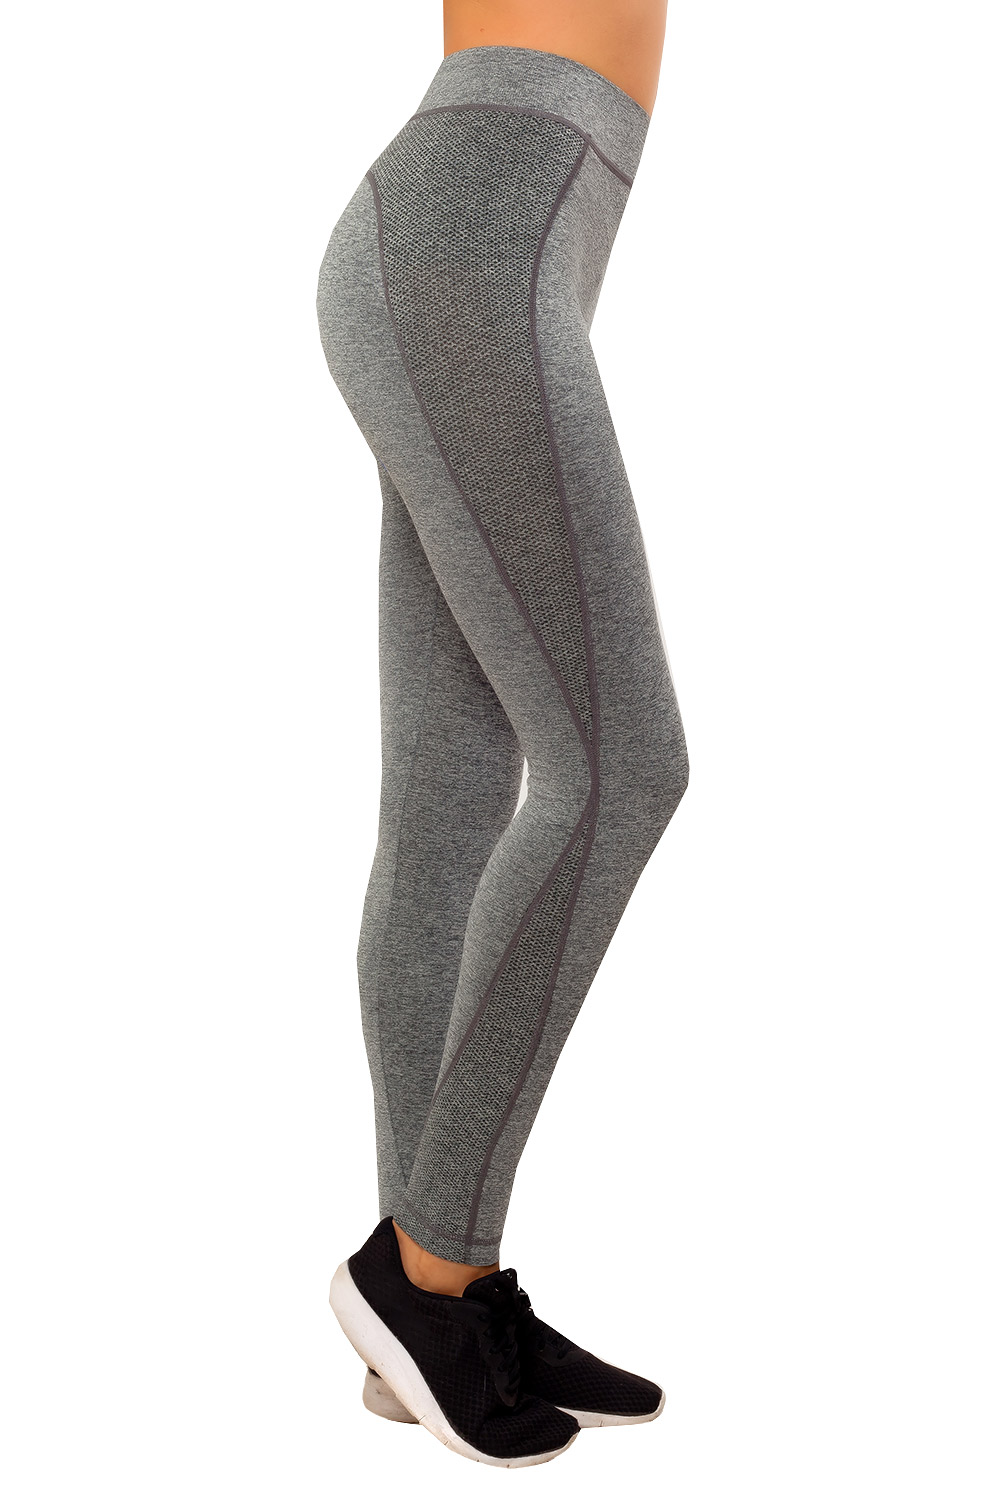 Damen Tights Sportleggings Funktionstights Laufhose Sporthose Melange Fitness